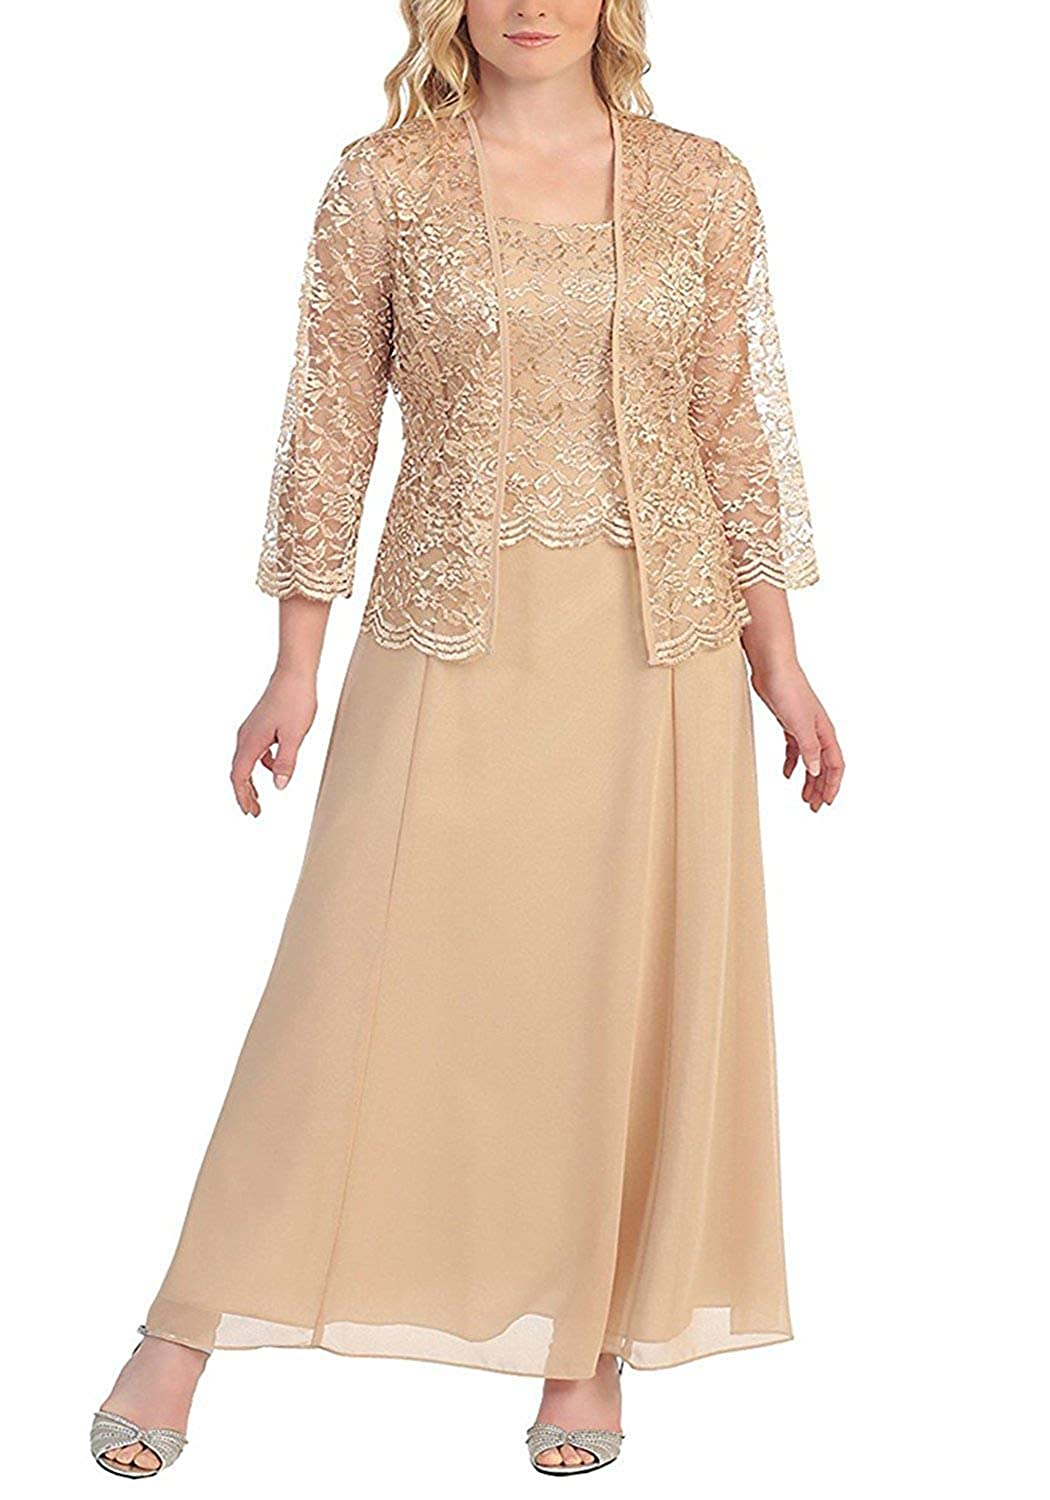 Champagne Mother of The Bride Dresses with Jackets Formal Evening Gowns Long Sleeves Lace Mother Dress